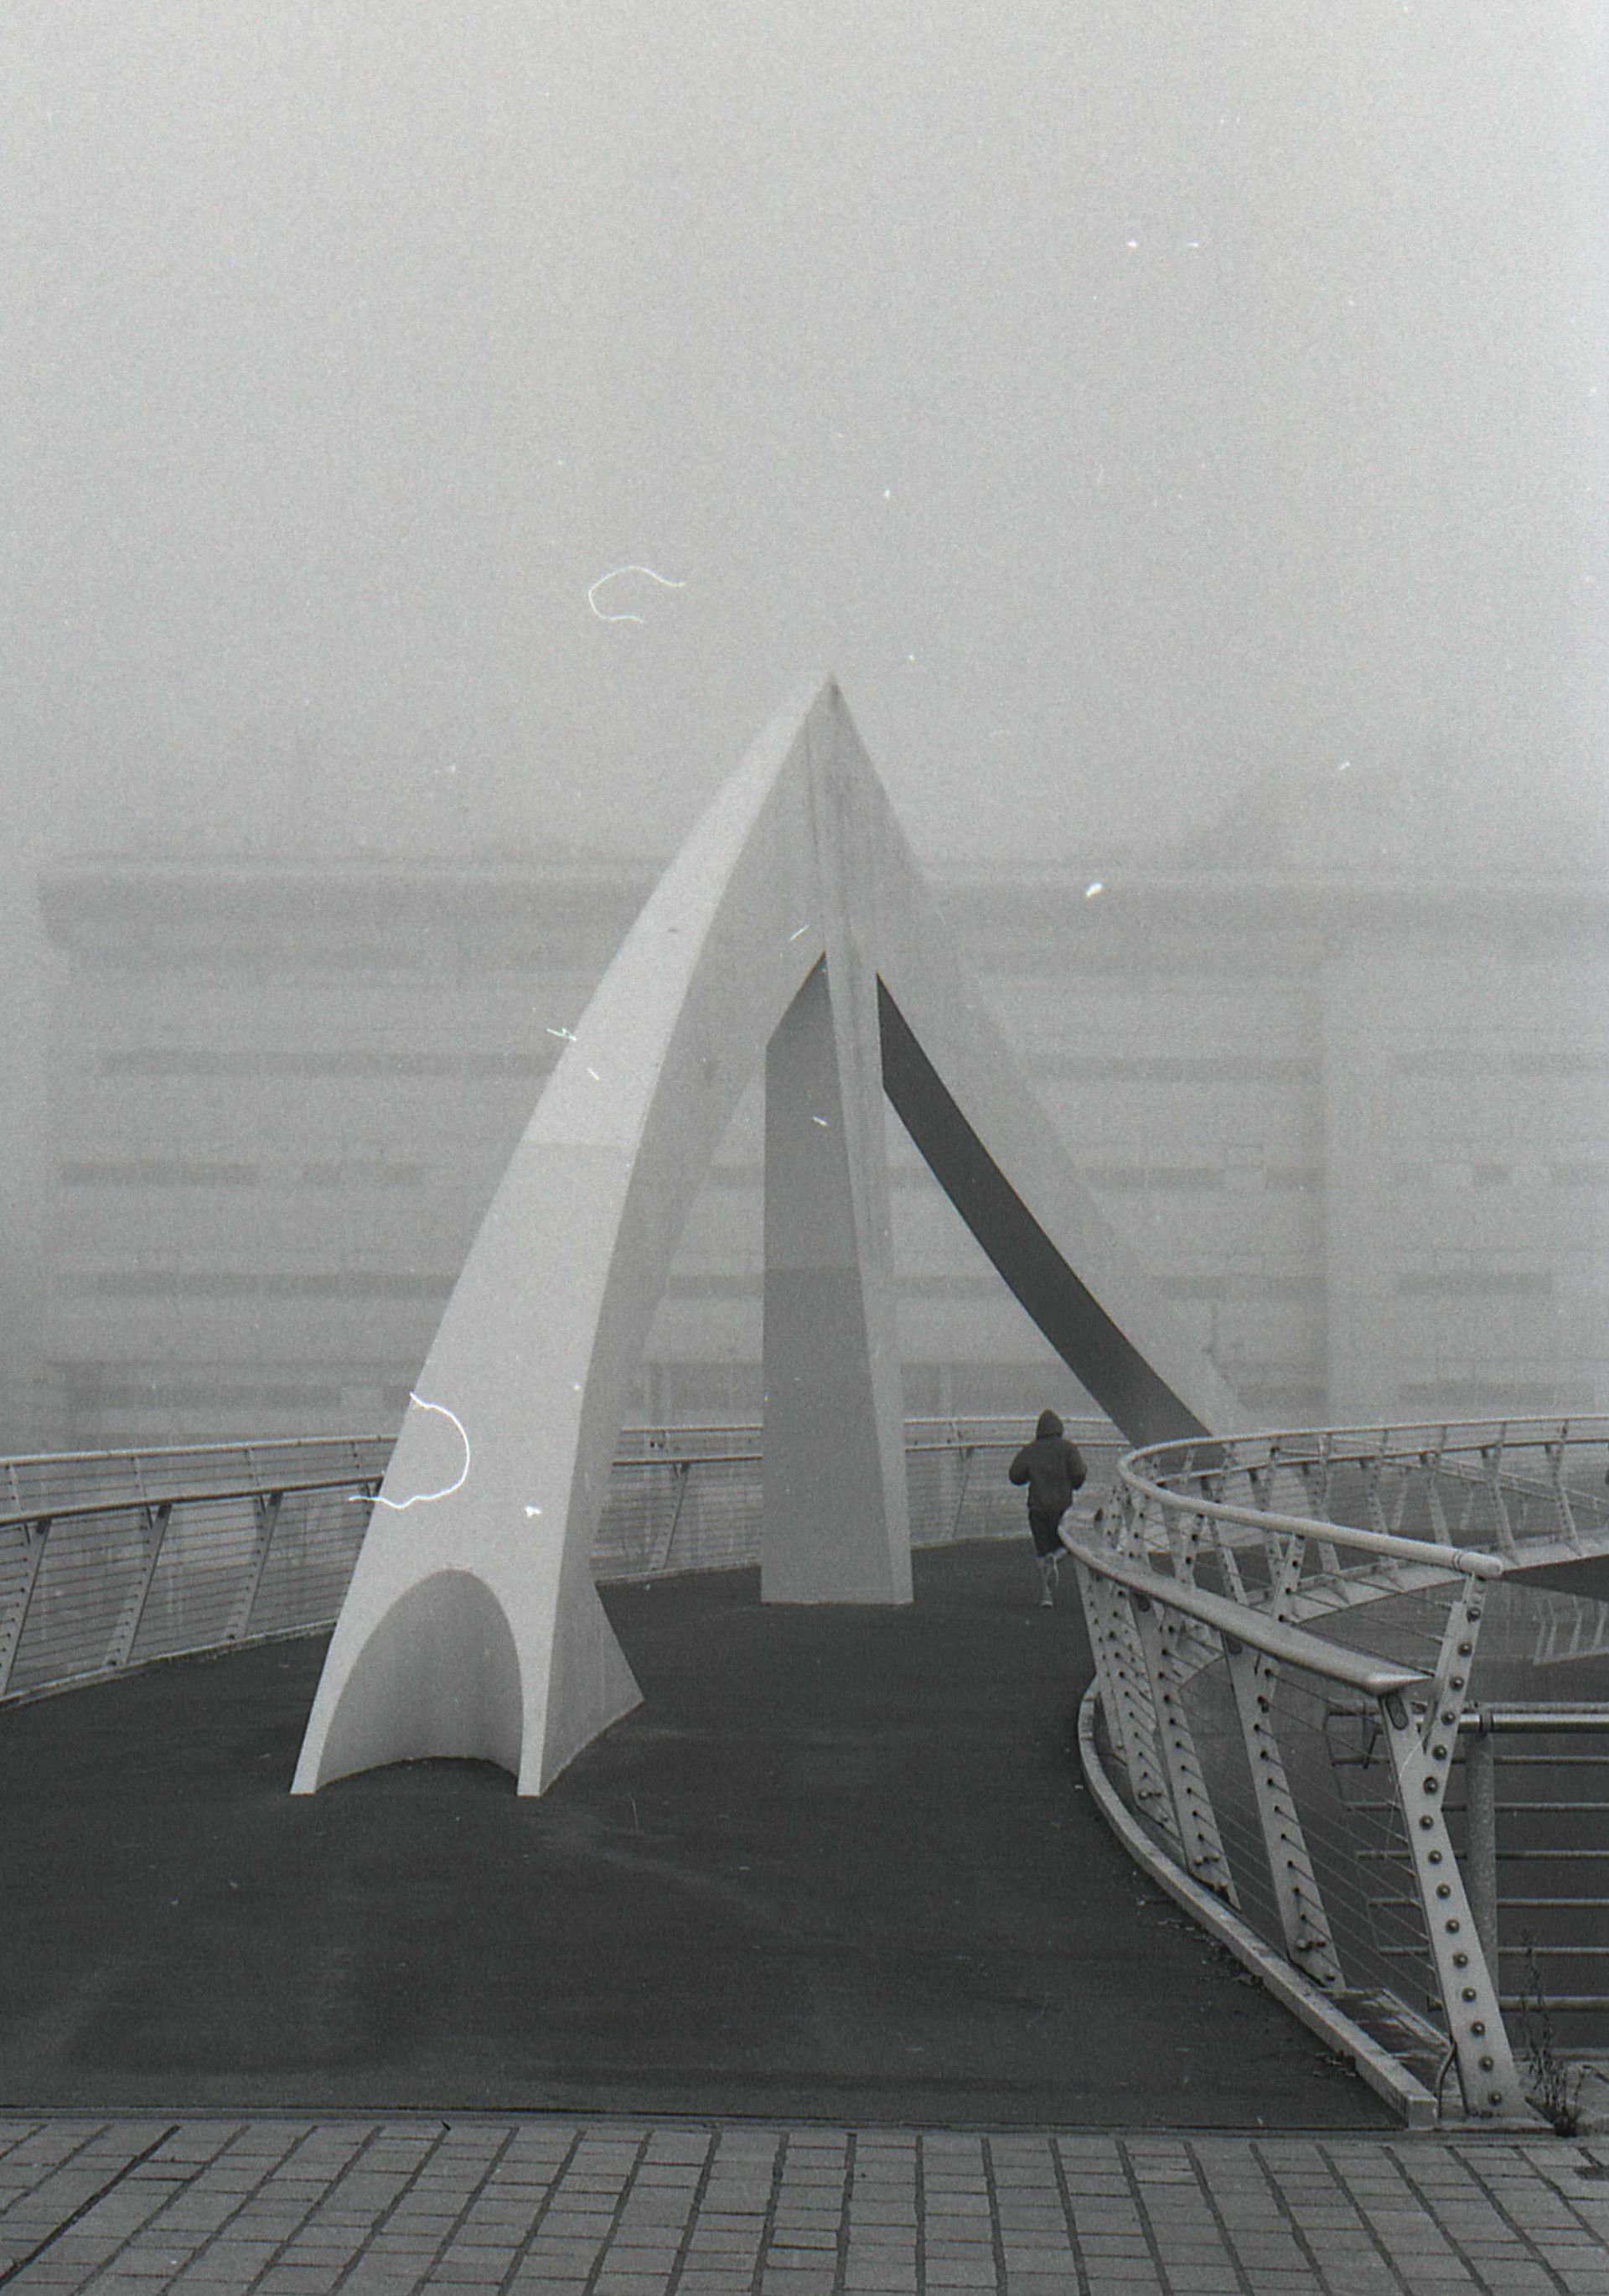 Squiggly Bridge in the Fog (2016)